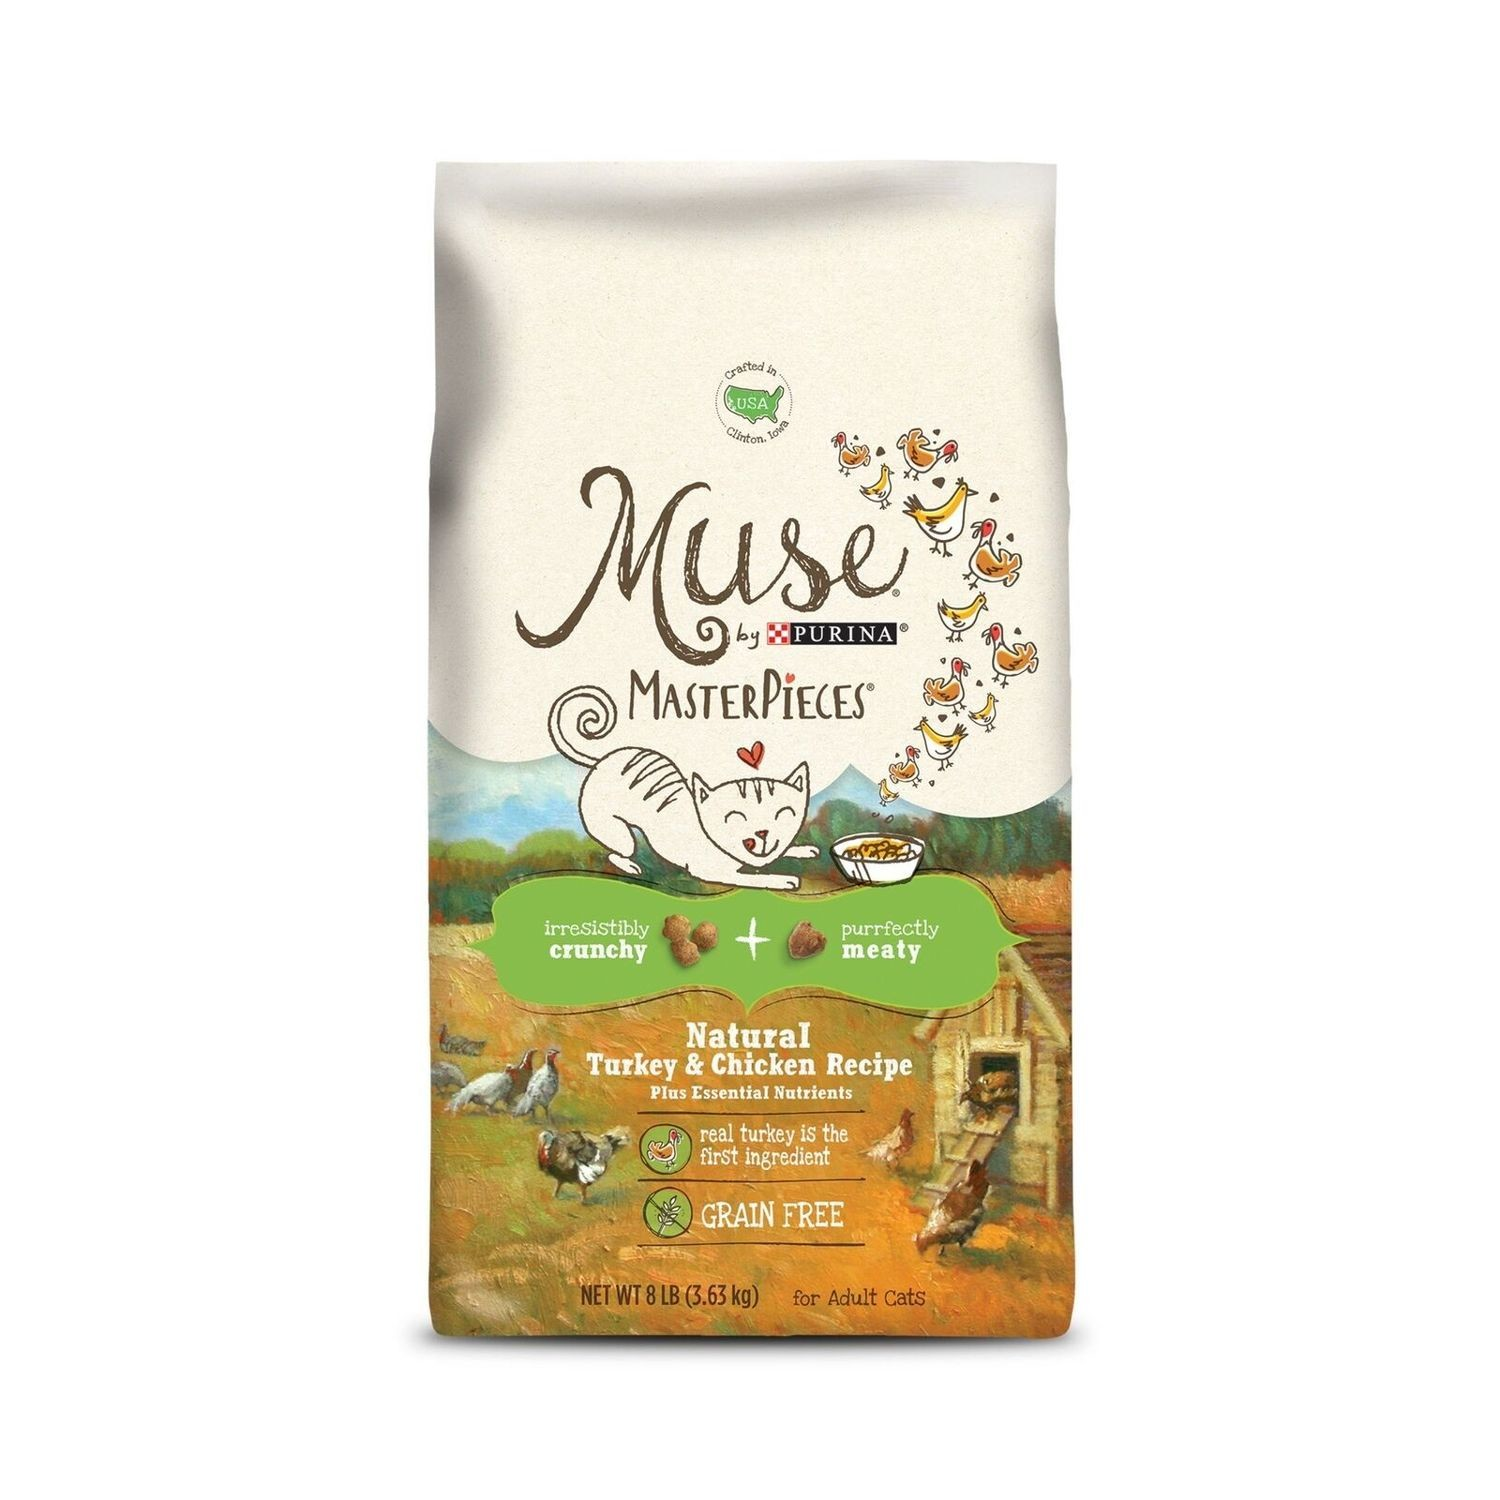 Muse Natural Grain Free Adult Dry Cat Food Dry Food With Meaty Masterpieces w/Turkey & Chicken 8 lbs. (8/19) (A.K3)